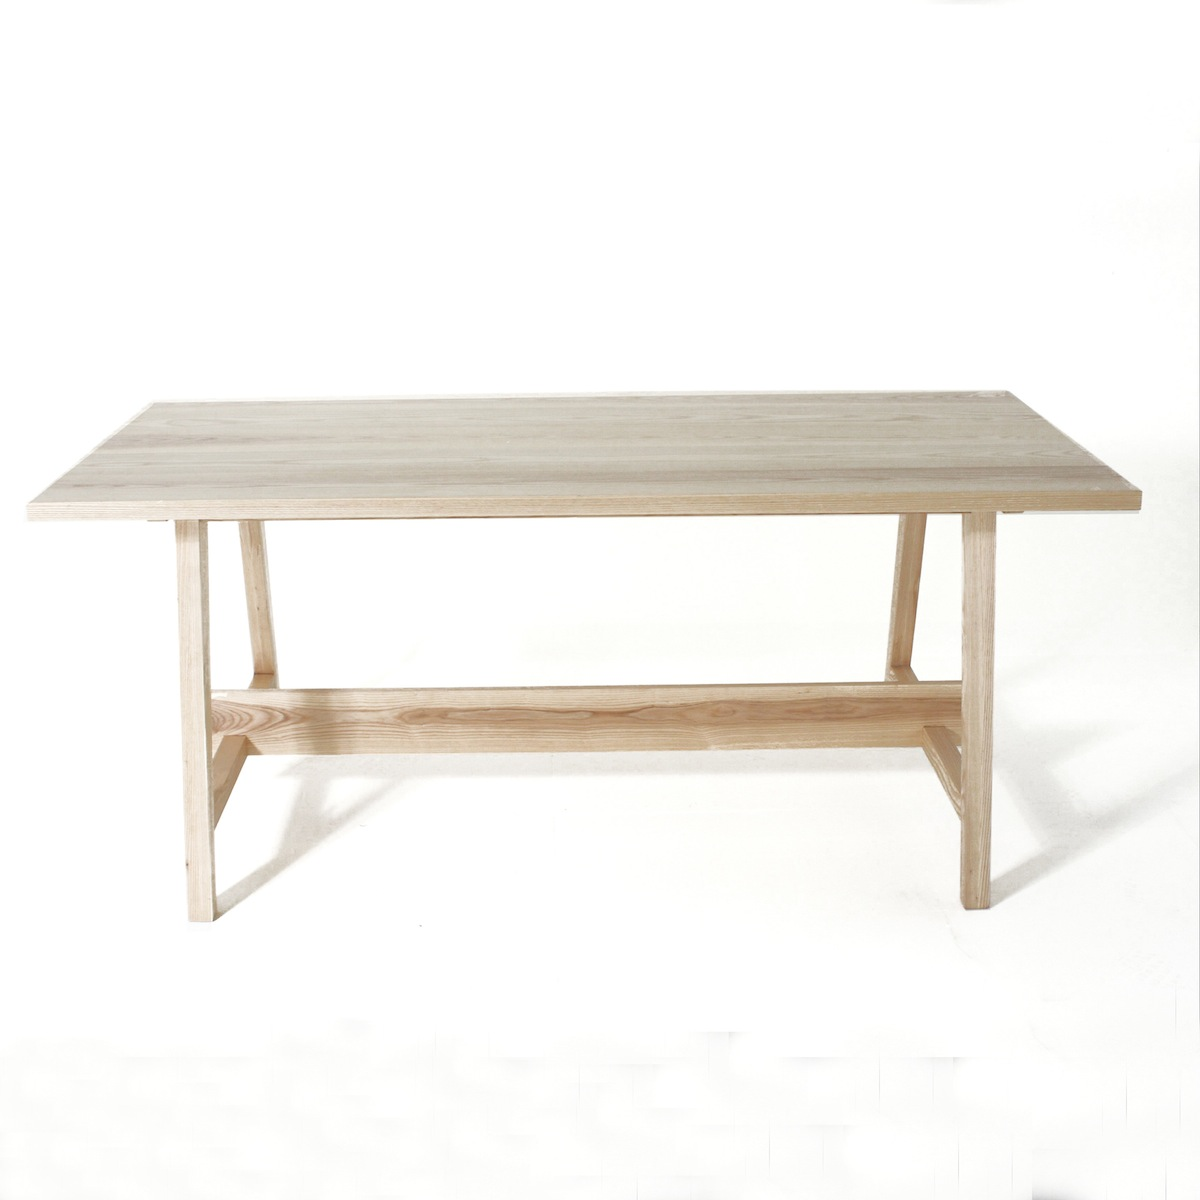 The Goodwood Co Urban Table In American Ash Wood